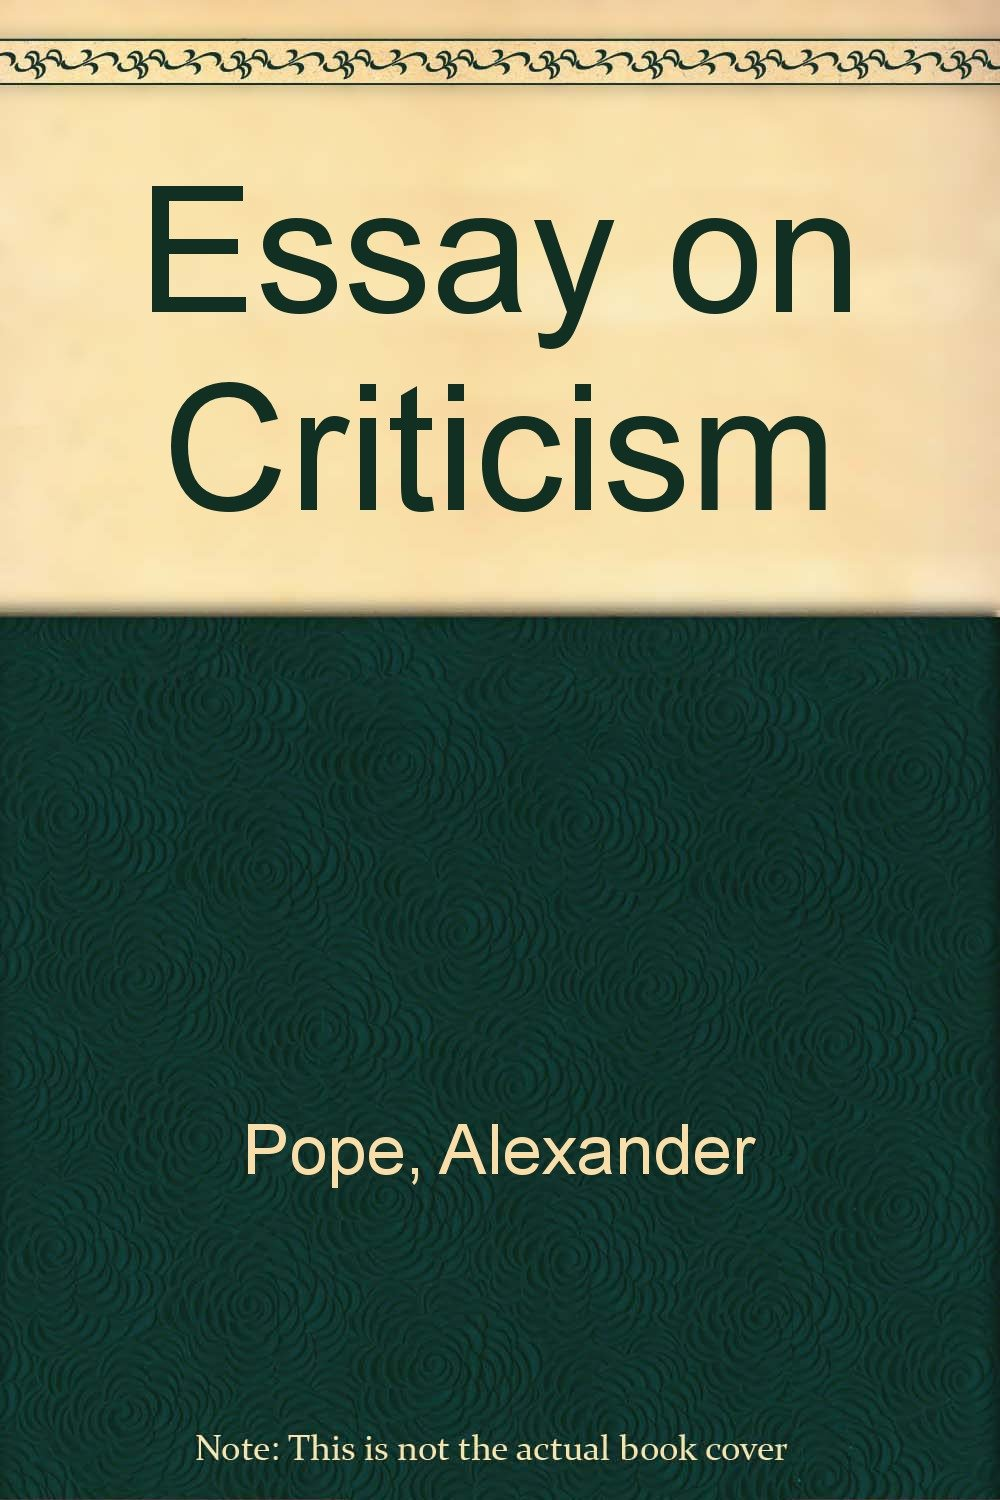 008 71dckmtazql Essay Example Pope On Unique Criticism Part 2 Pope's Was Written In Full